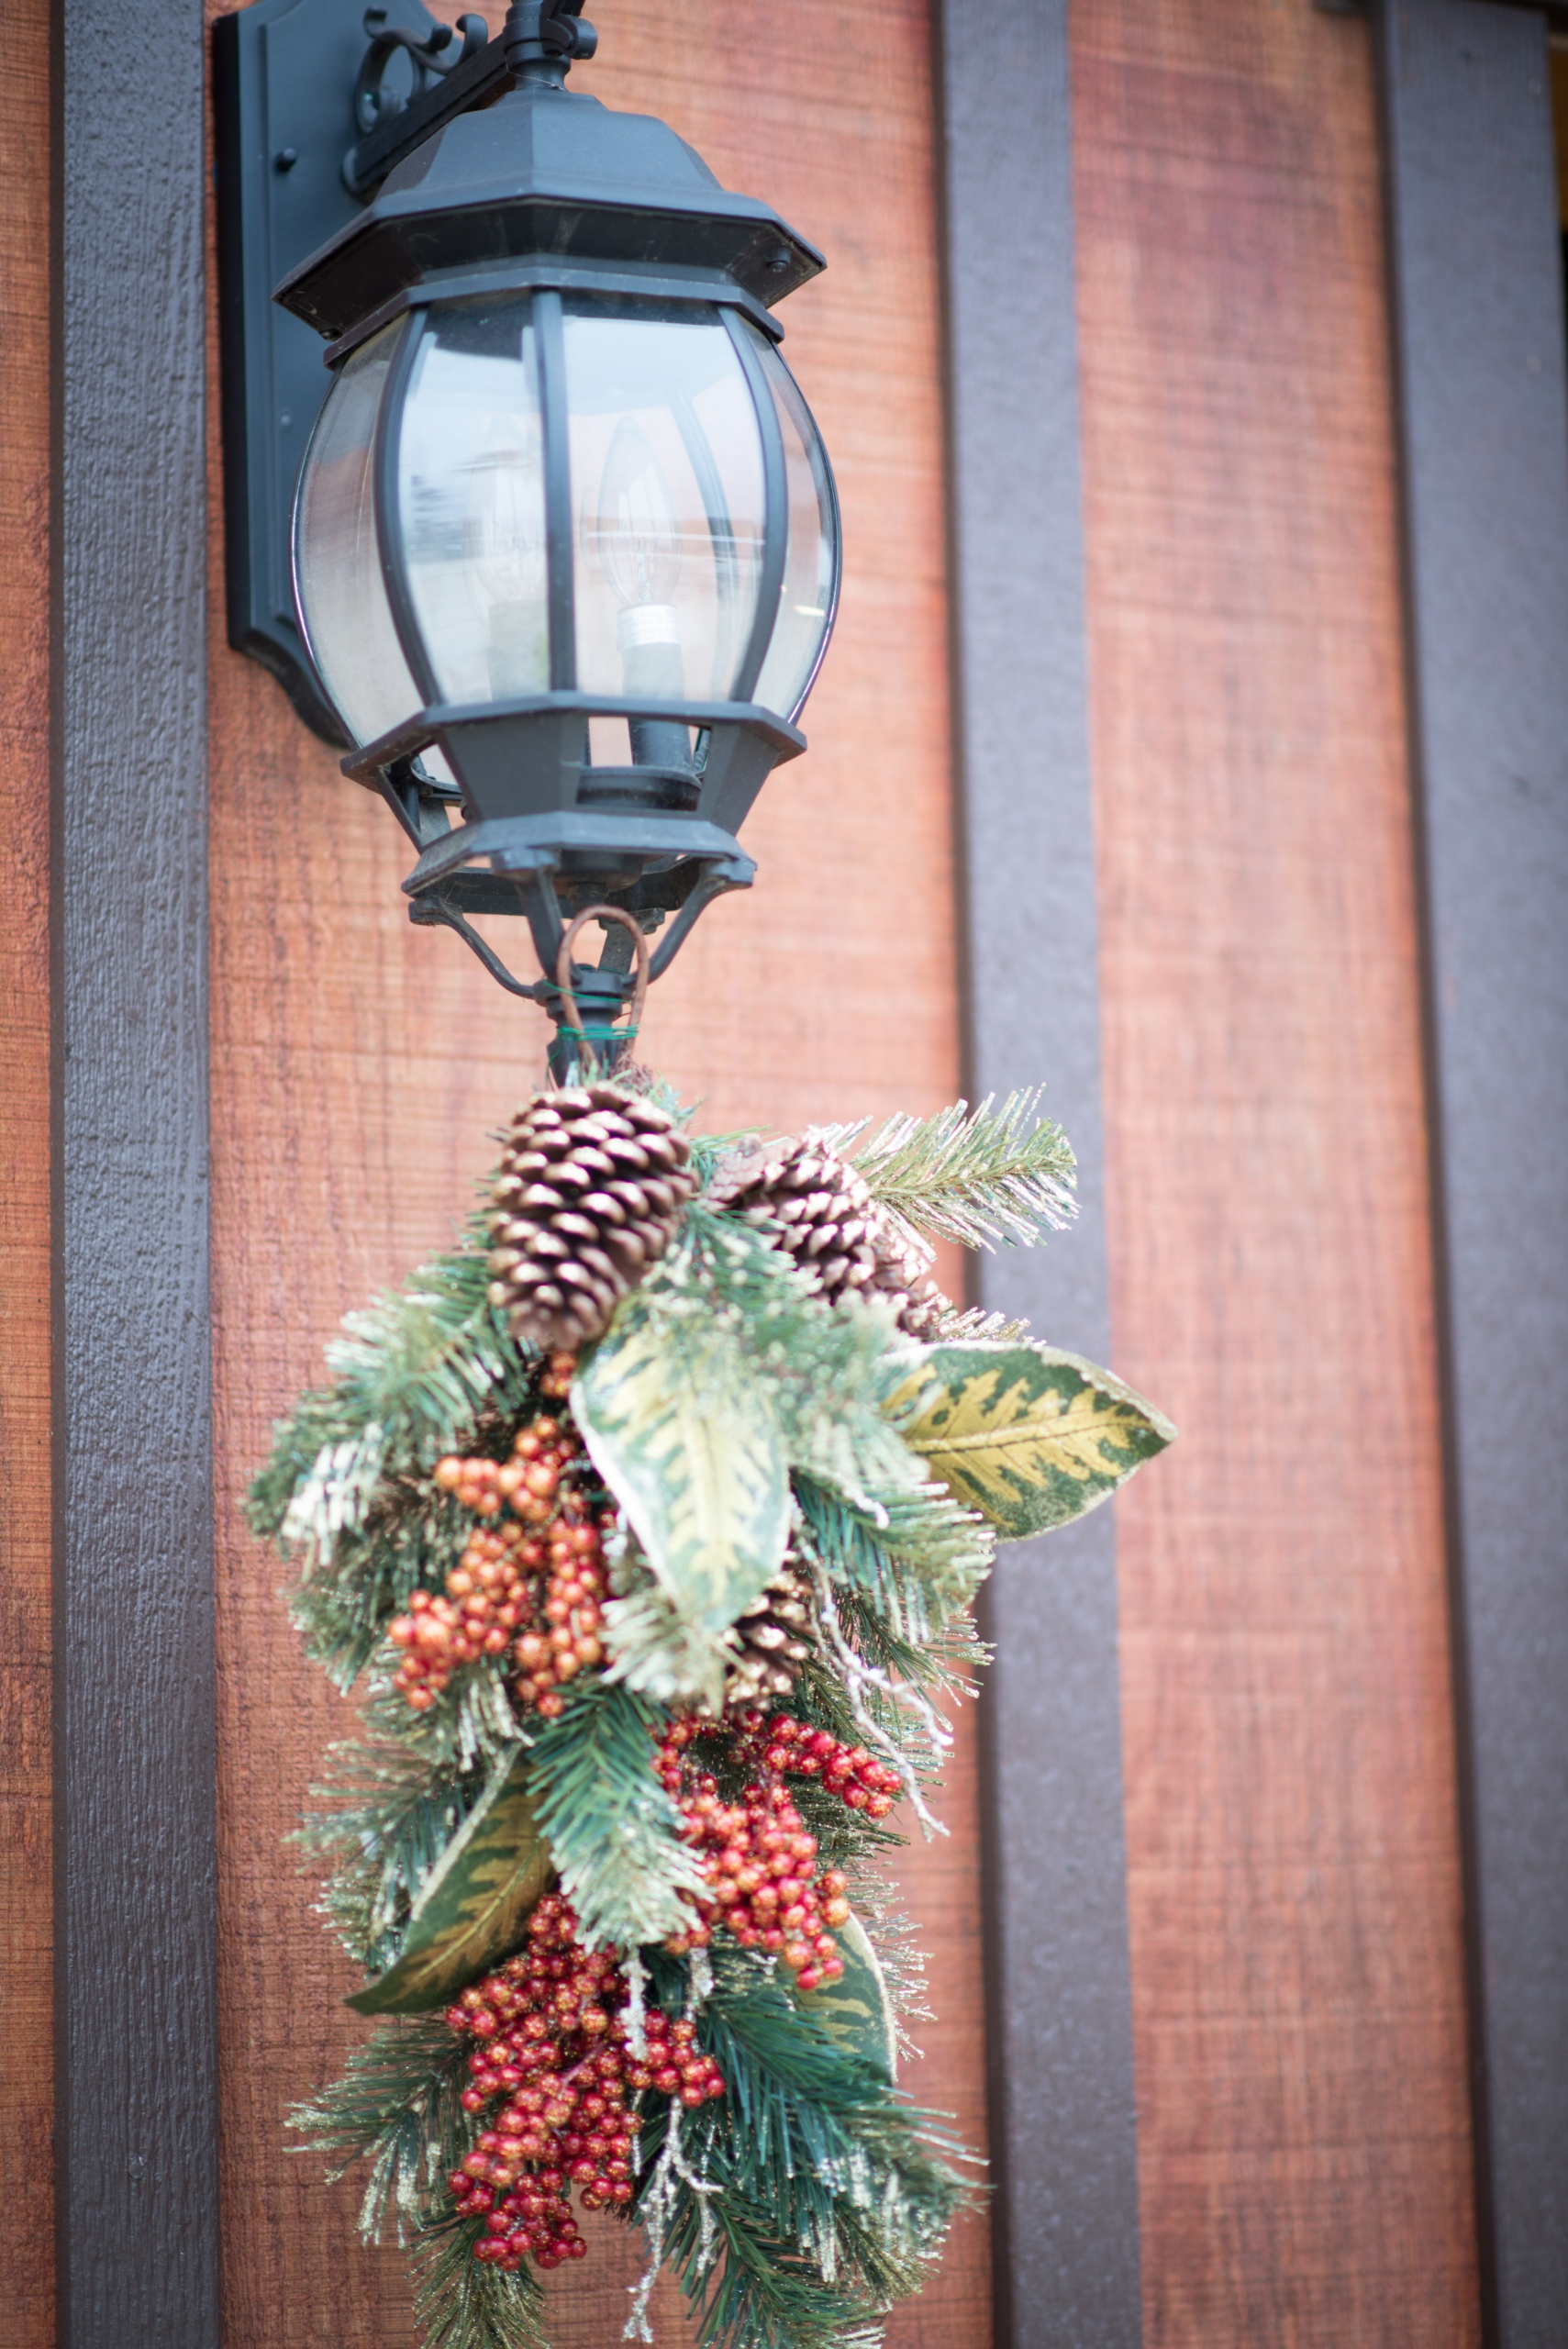 Winter pine cone decorations hang on a lantern for the Christmas show